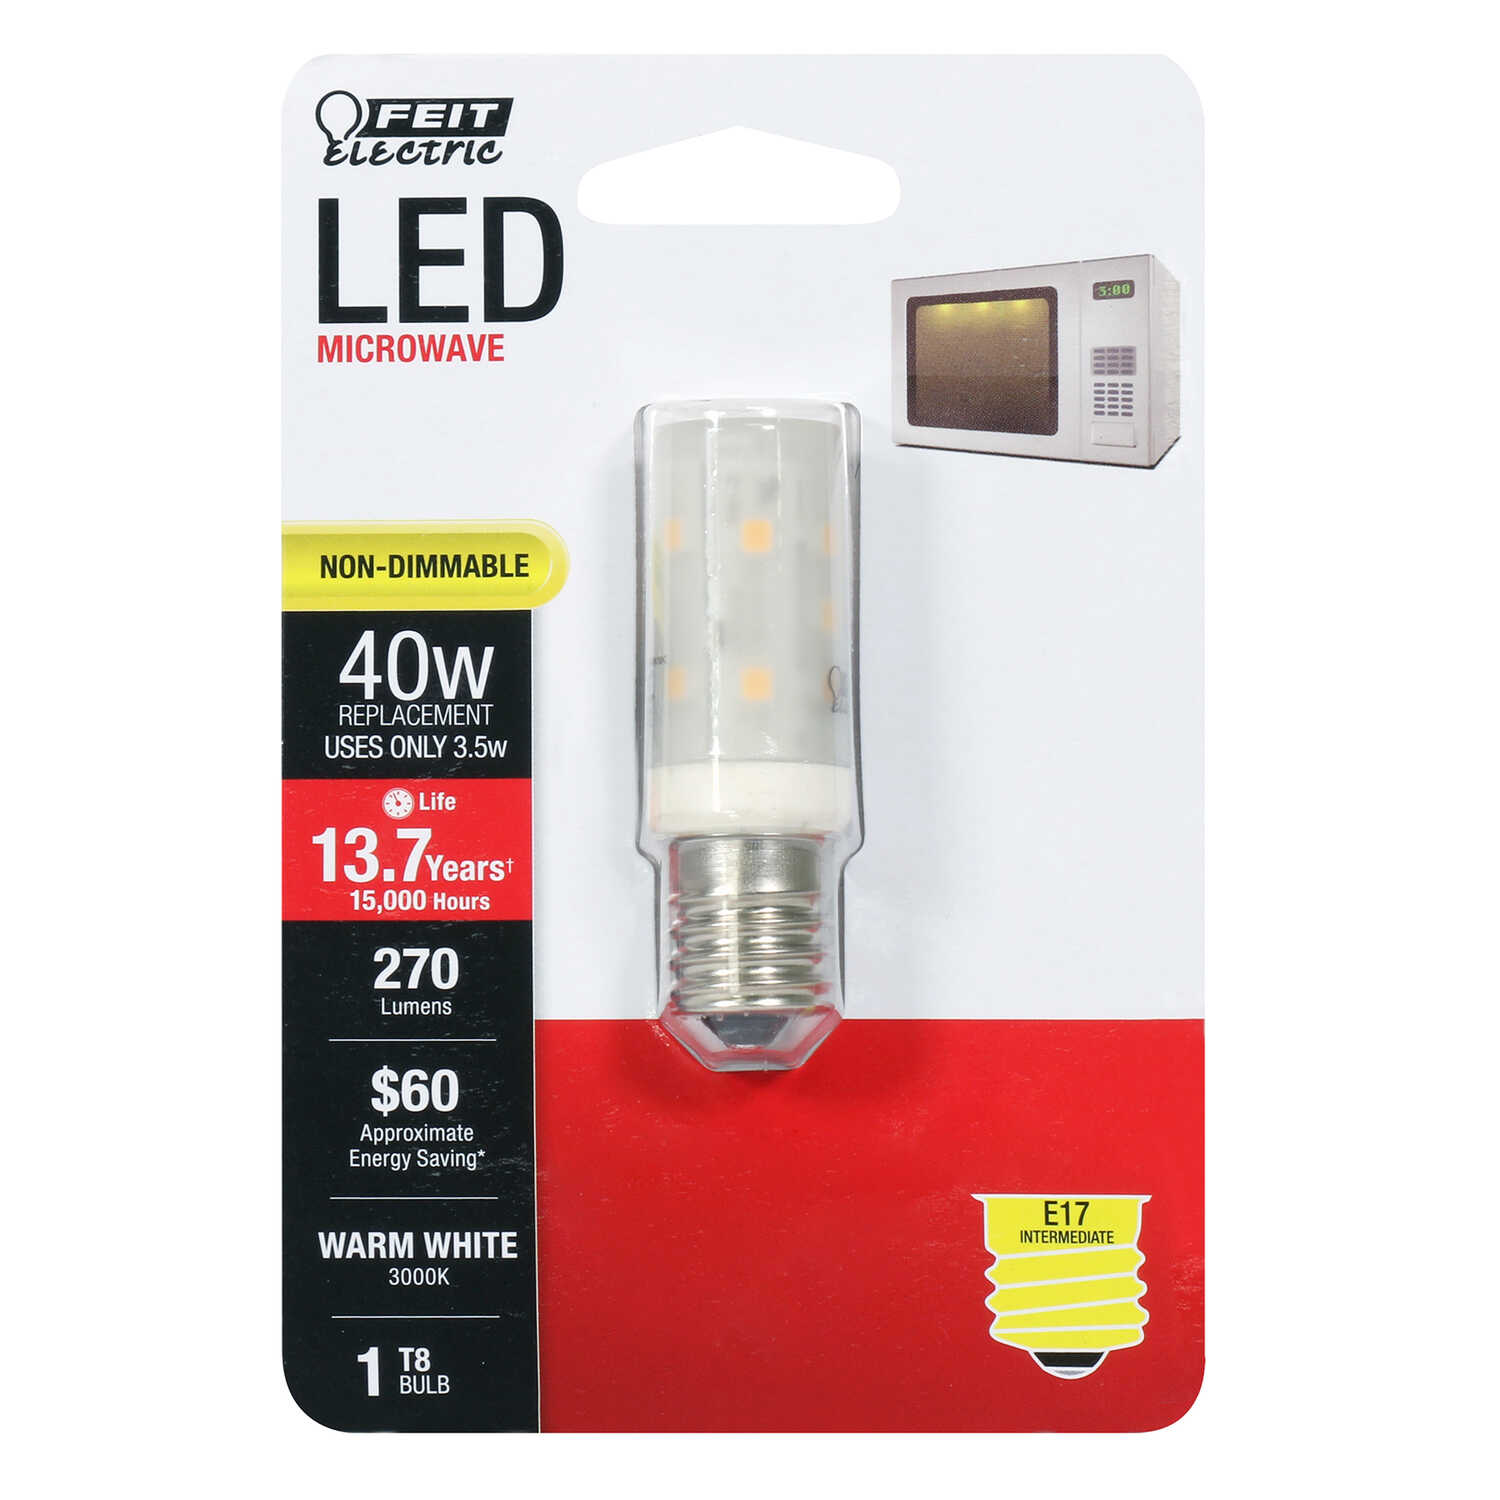 FEIT Electric  3.5 watts T8  LED Bulb  270 lumens Warm White  Appliance  40 Watt Equivalence